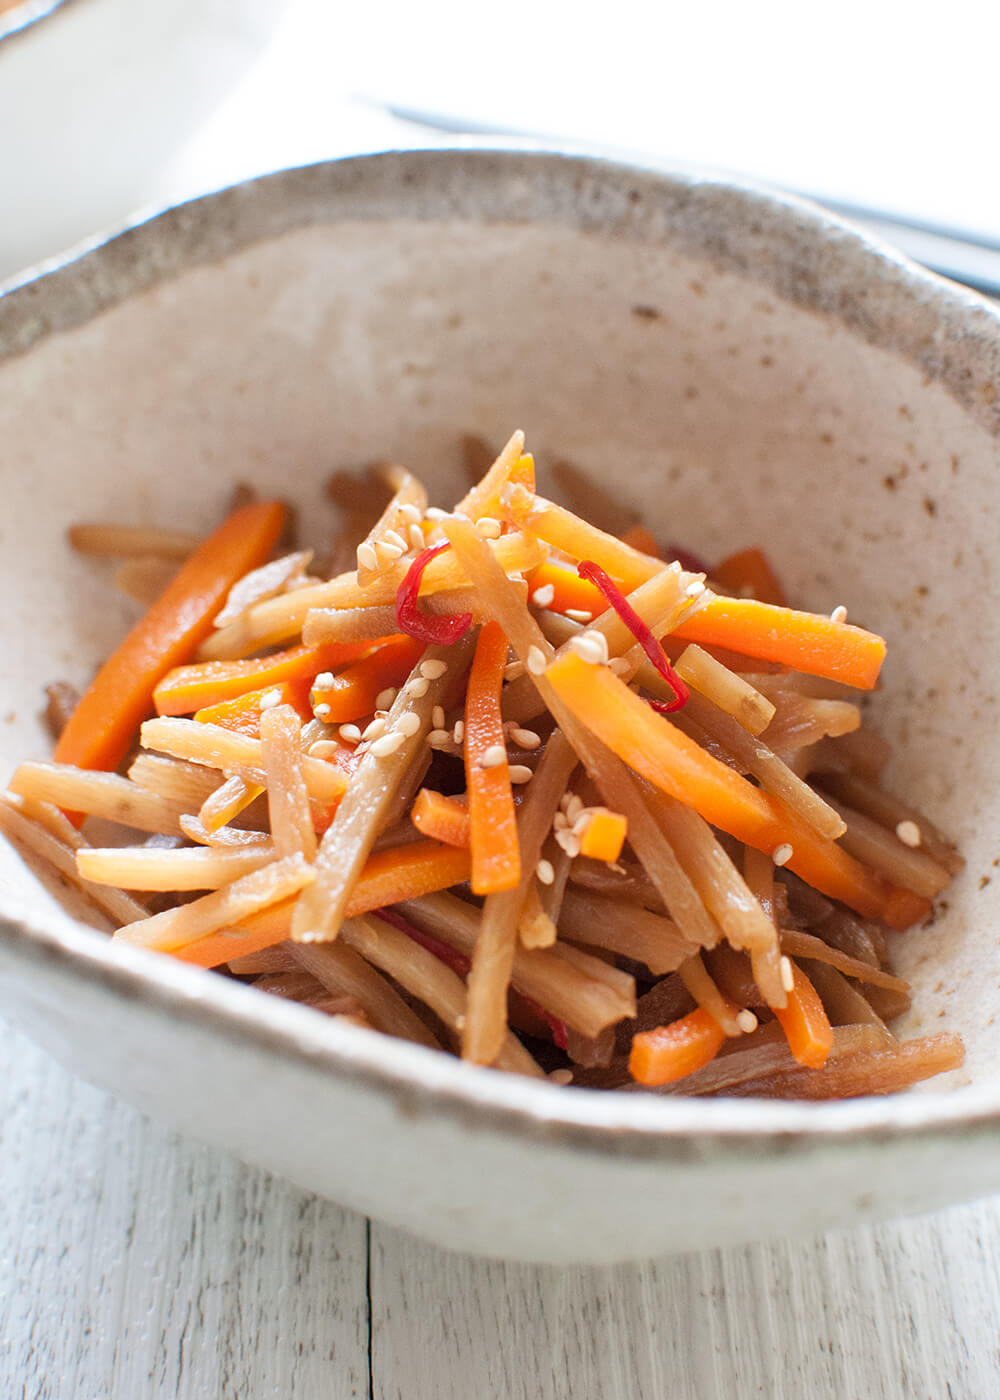 Burdock and Carrot Salad with Sesame Dressing